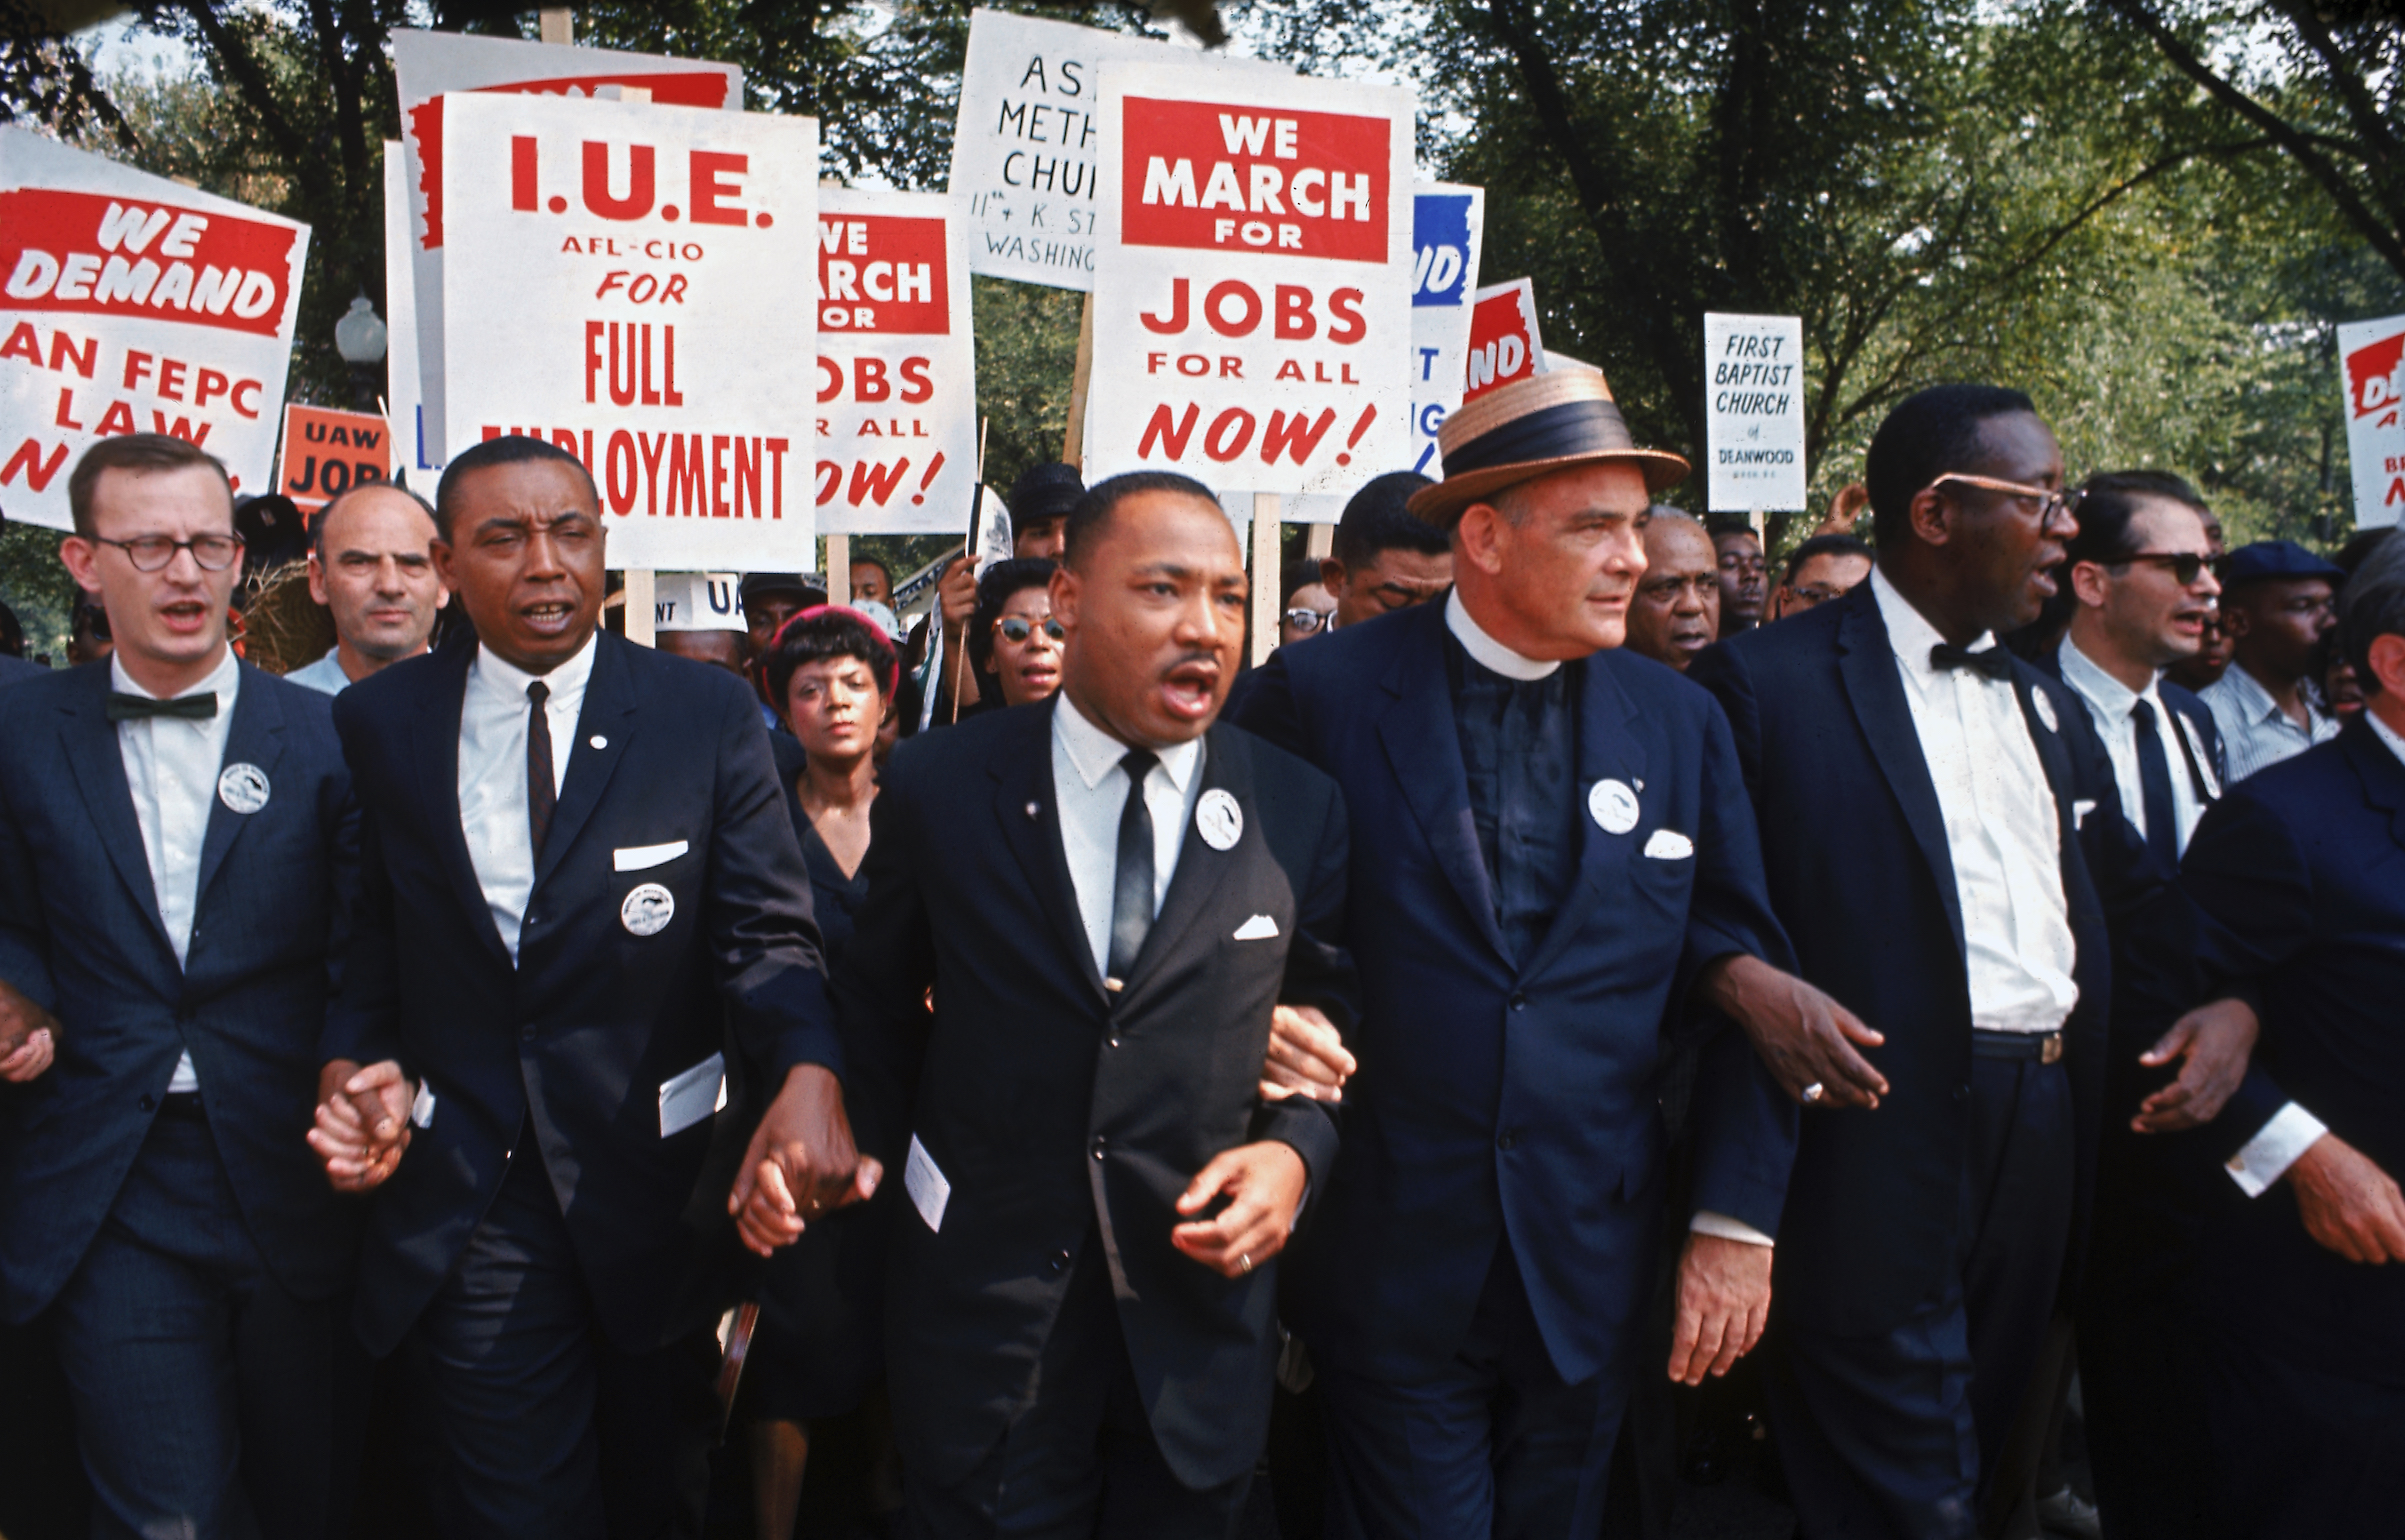 Leaders of the March on Washington for Jobs and Freedom. Left to right: Mathew Ahmann, Floyd McKissick, Martin Luther King Jr., Eugene Carson Blake and Cleveland Robinson